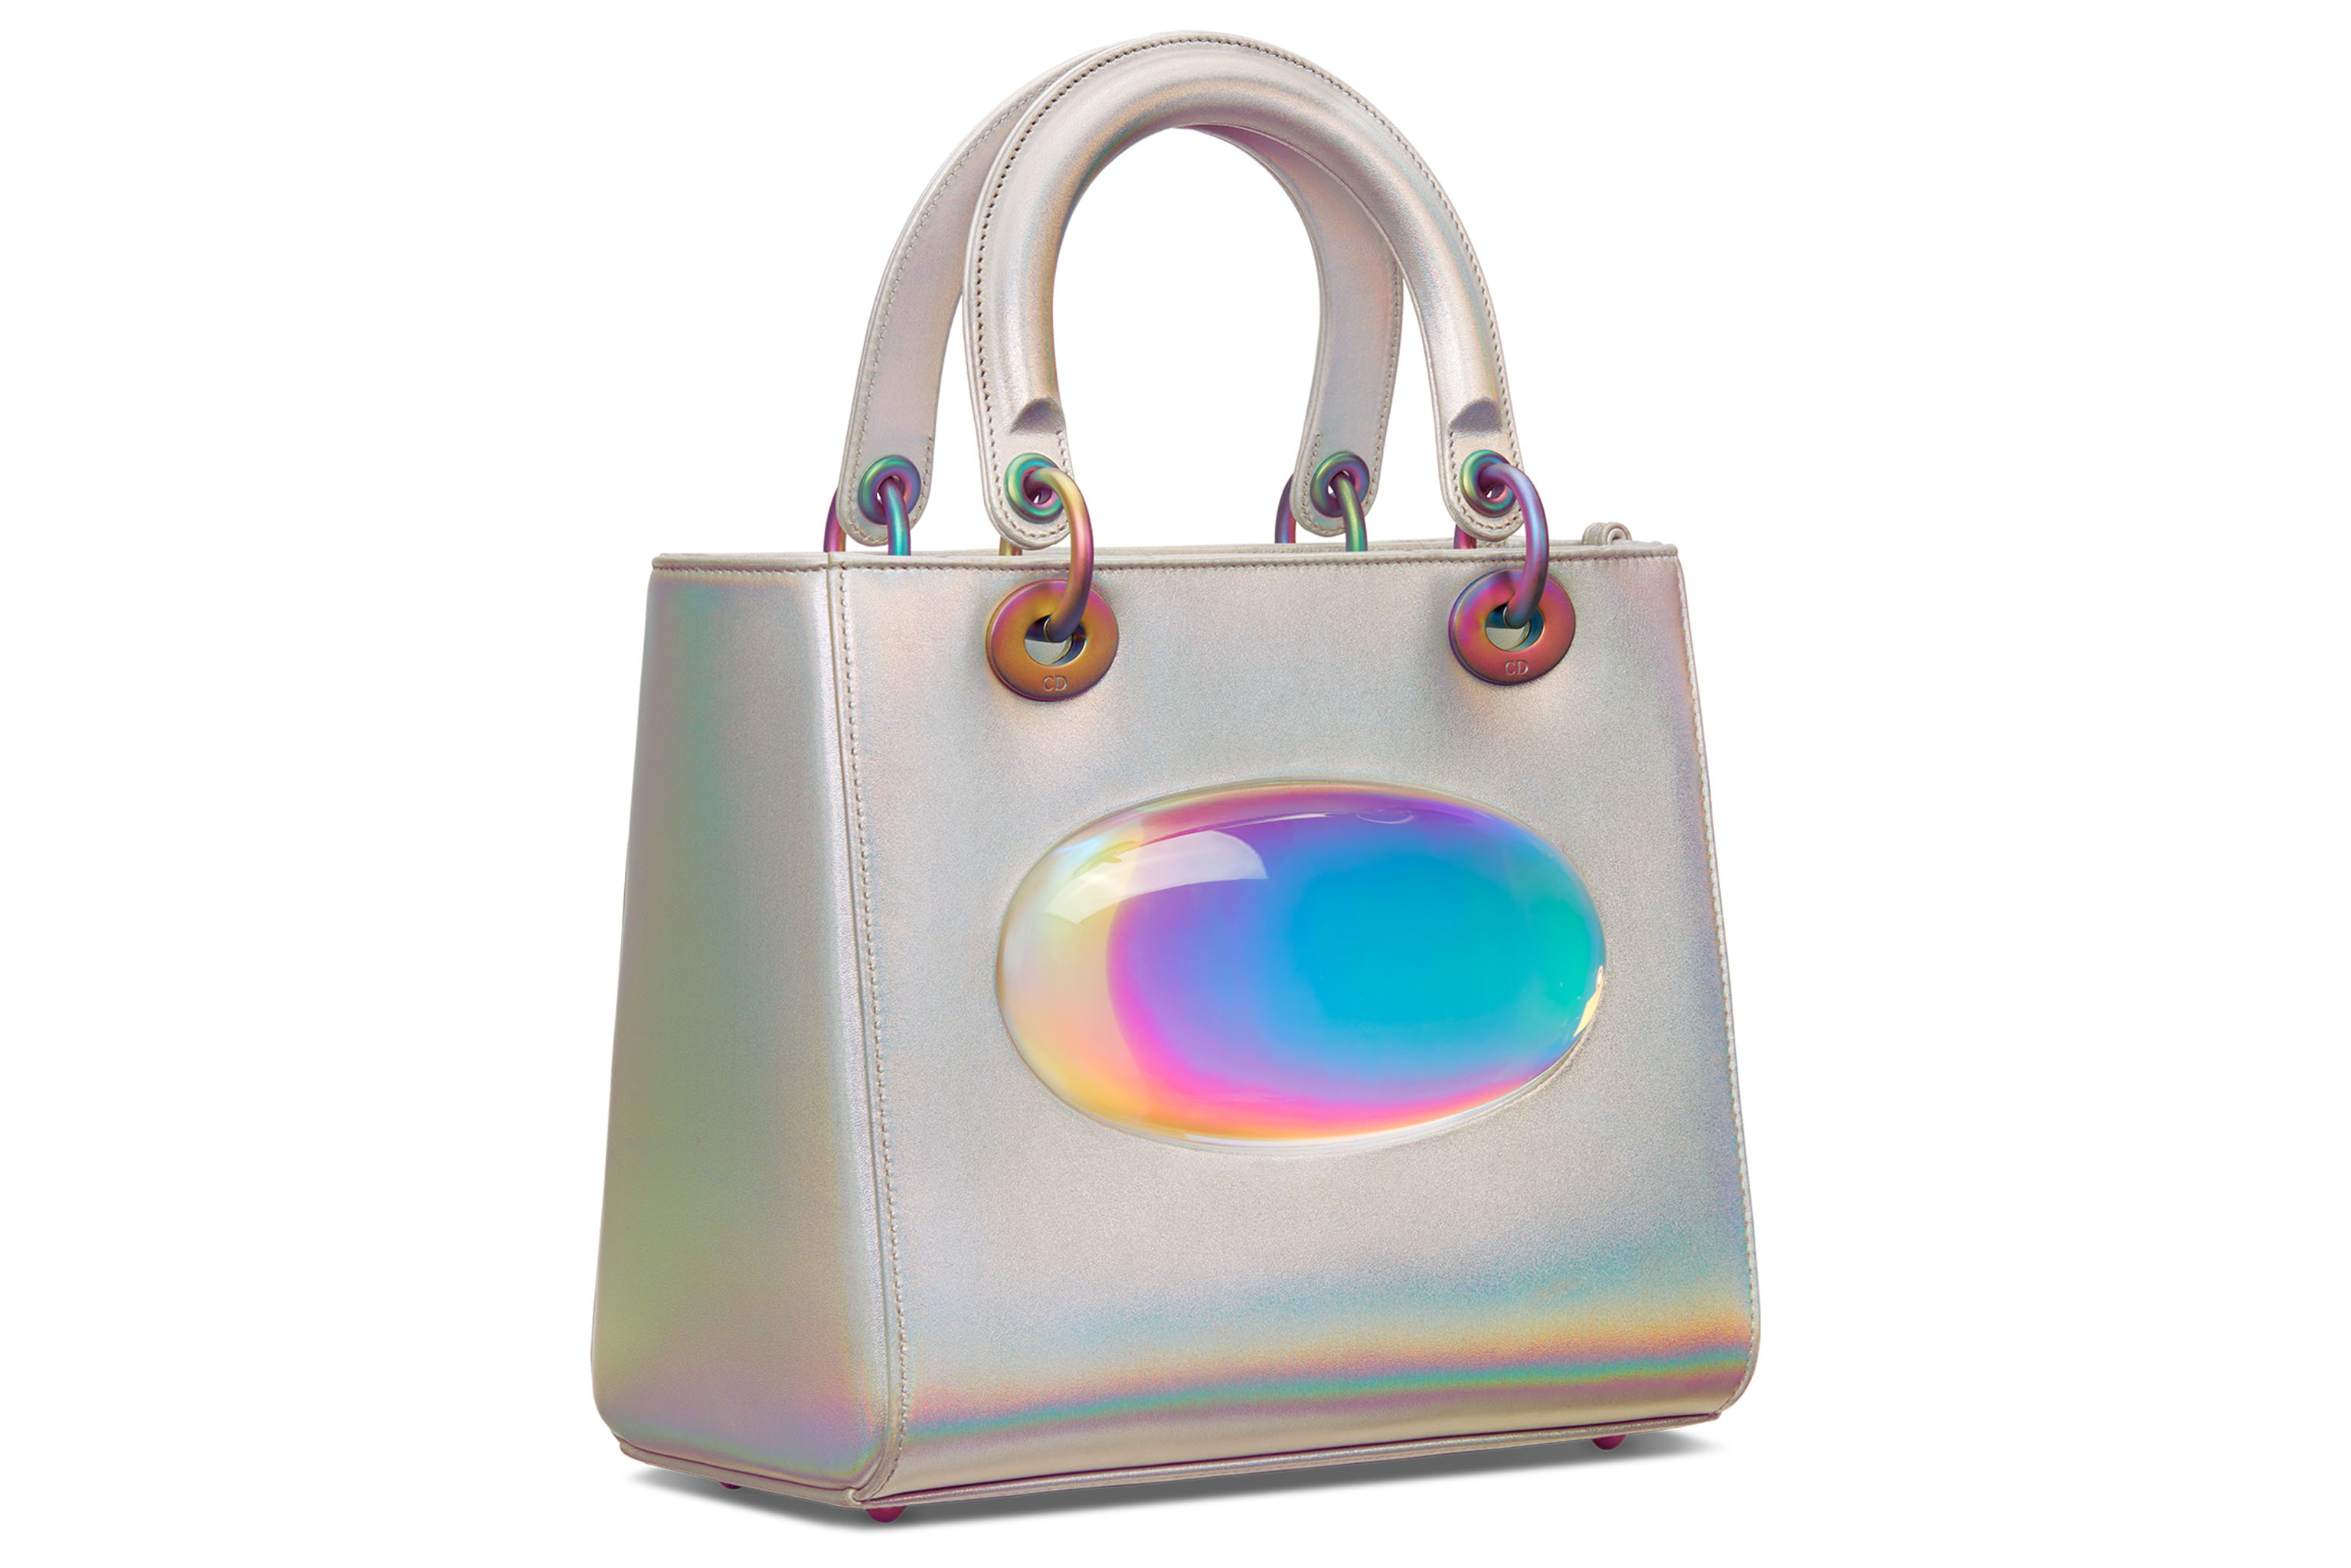 The Lady Dior bag designed by Gisela Colón